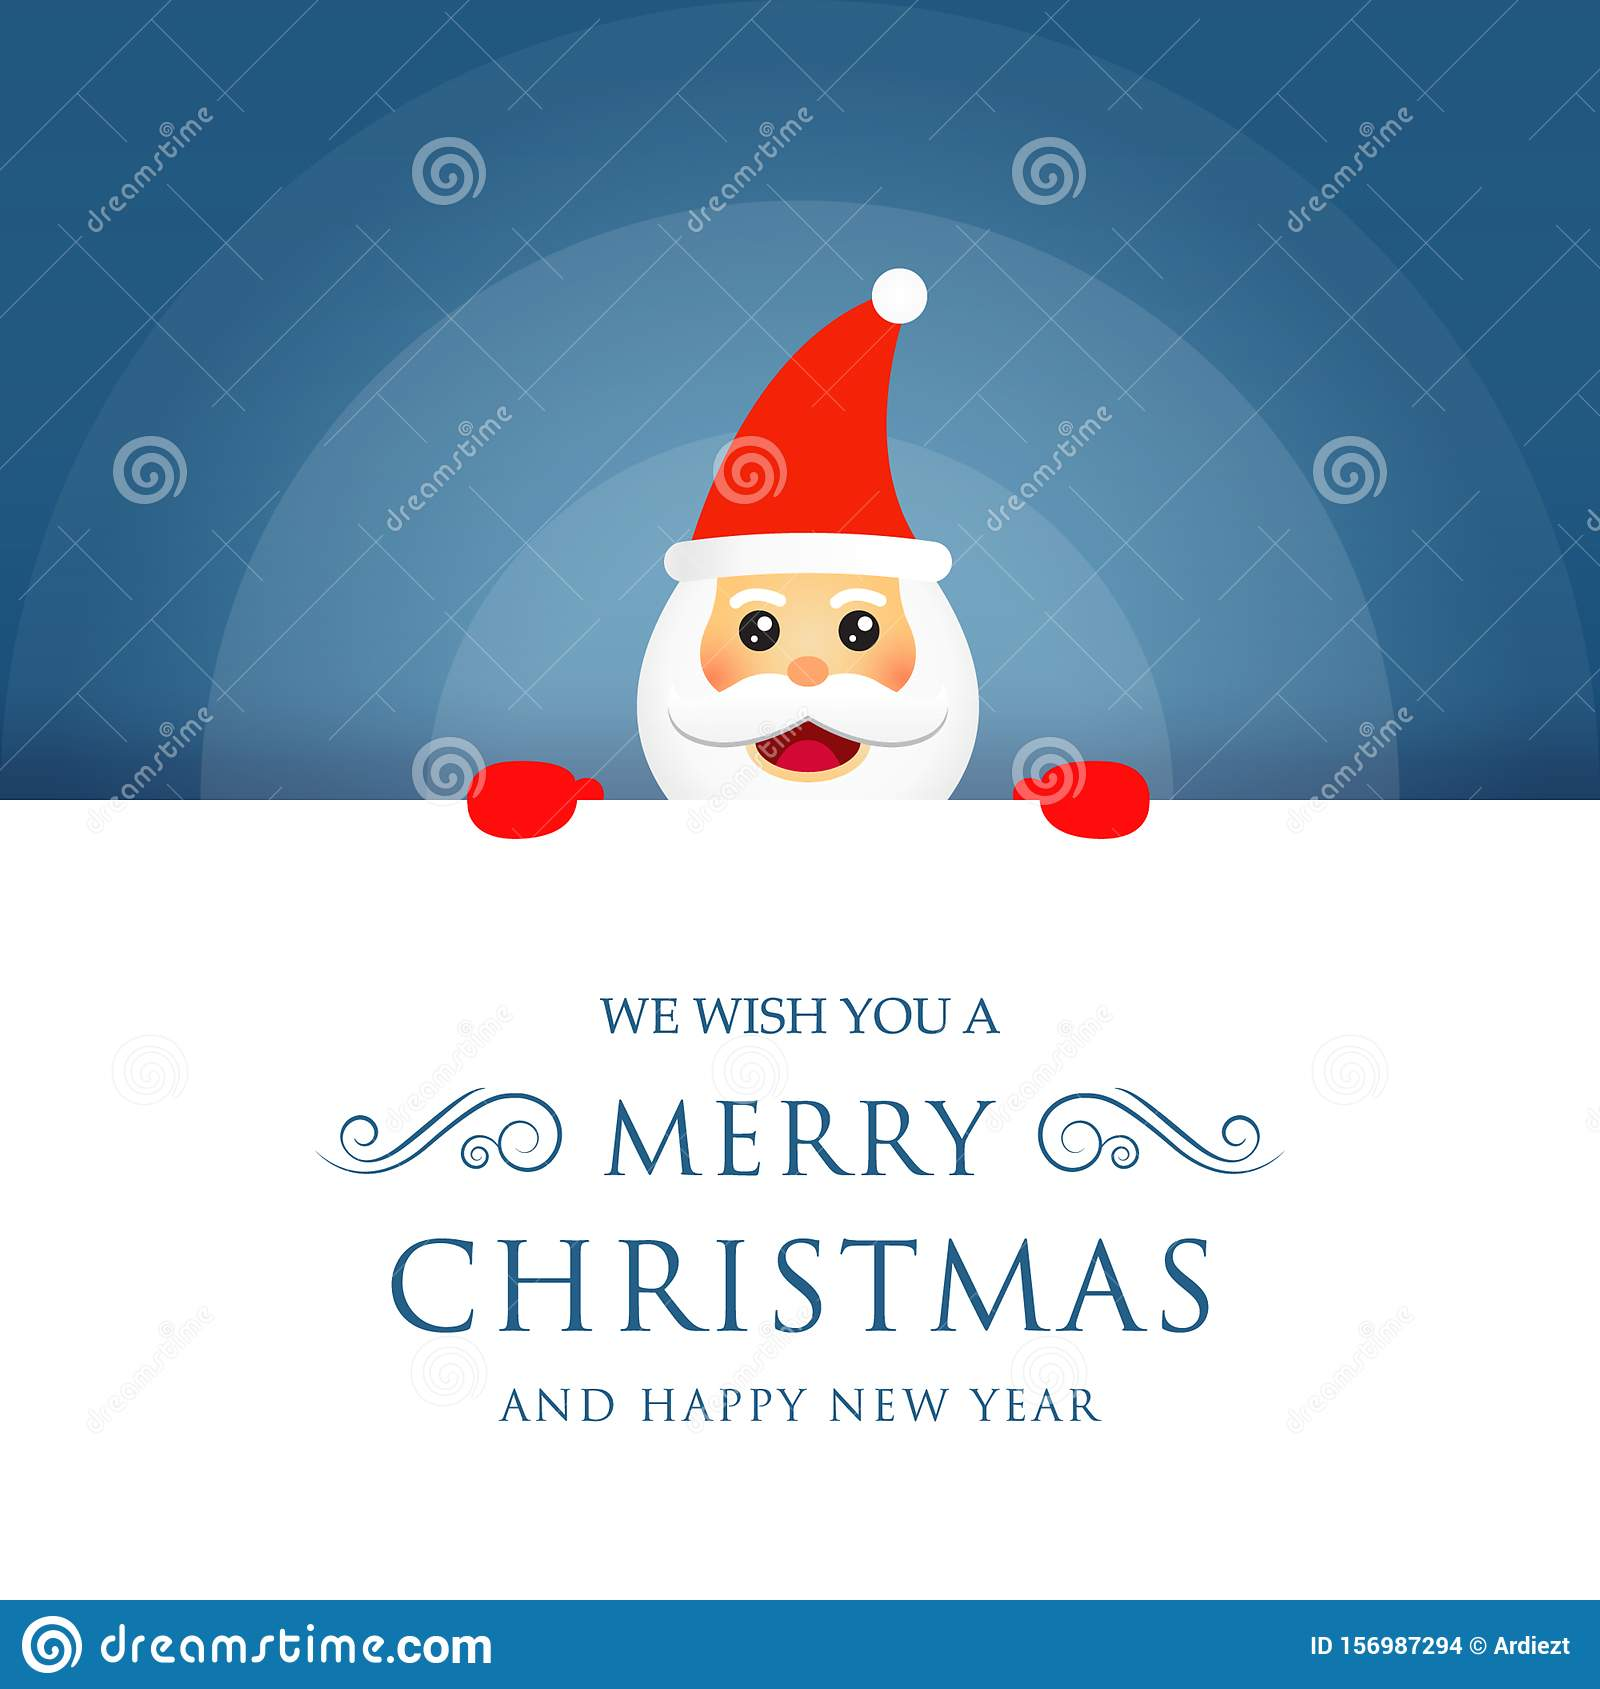 Santa Claus Vector Illustration In Blue And White Background